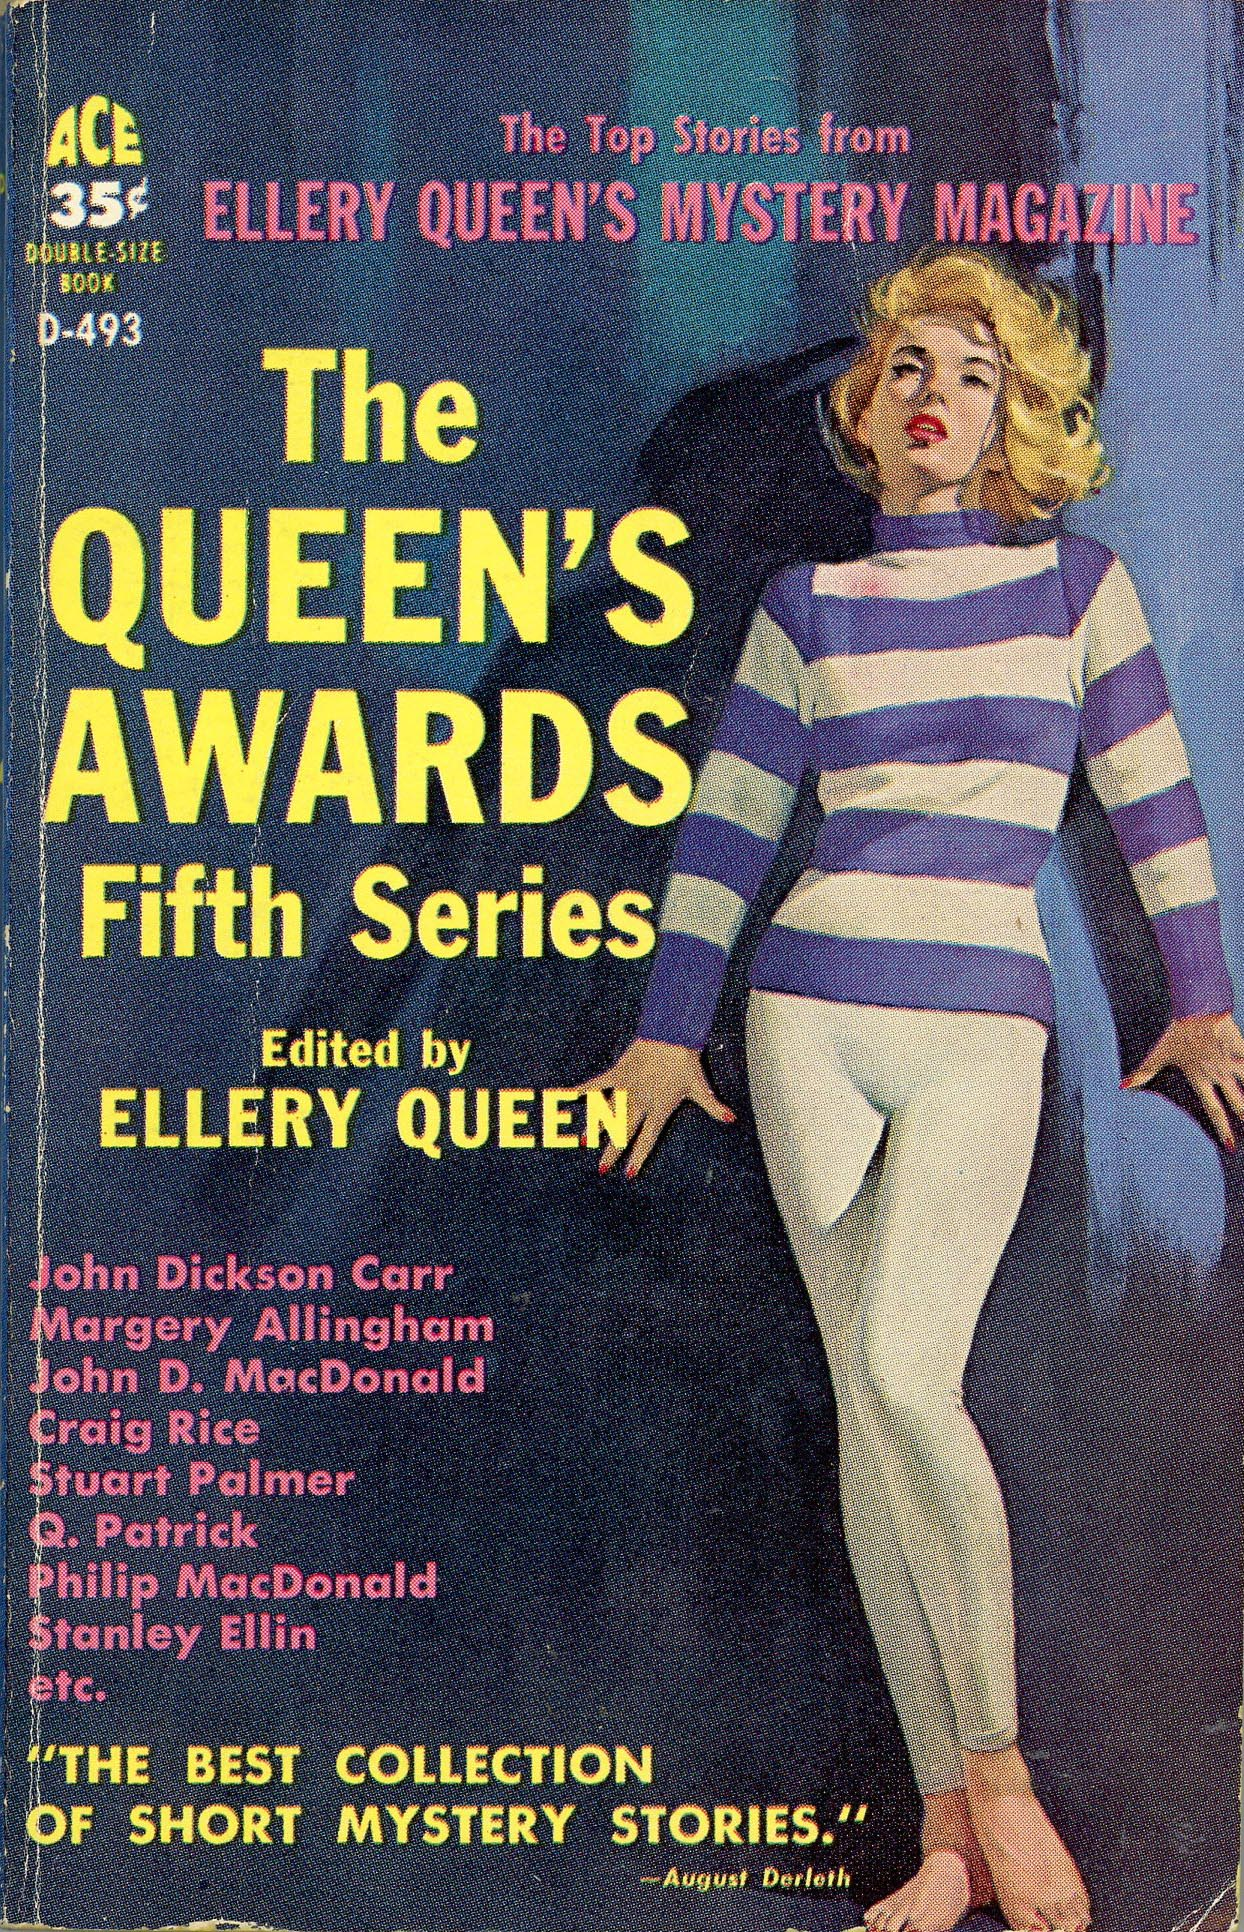 Image result for ellery queen's mystery magazine pulp covers""